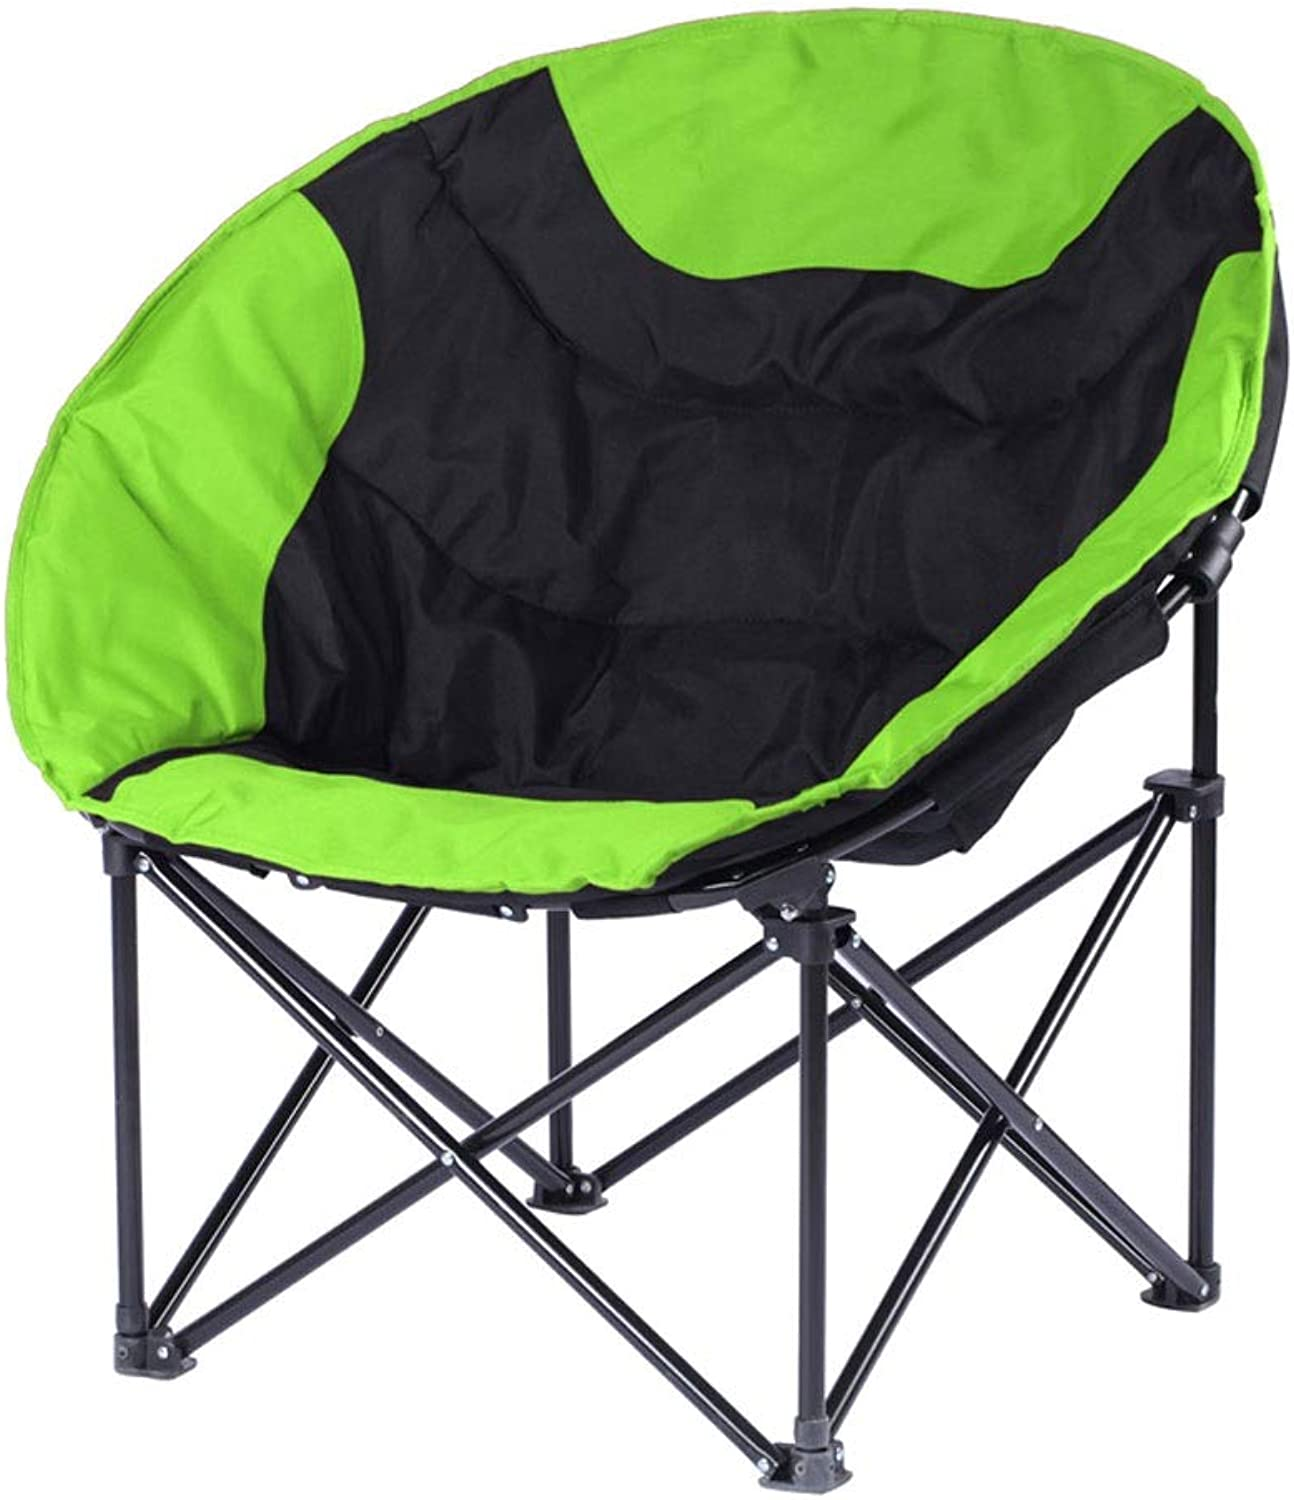 LNYJ Leisure Folding Chair Recliner Lazy Chair Large Home Courtyard Lunch Break Outdoor Portable Fishing Chair Oxford Cloth Washable Super Load Bearing Stool (color   Green)